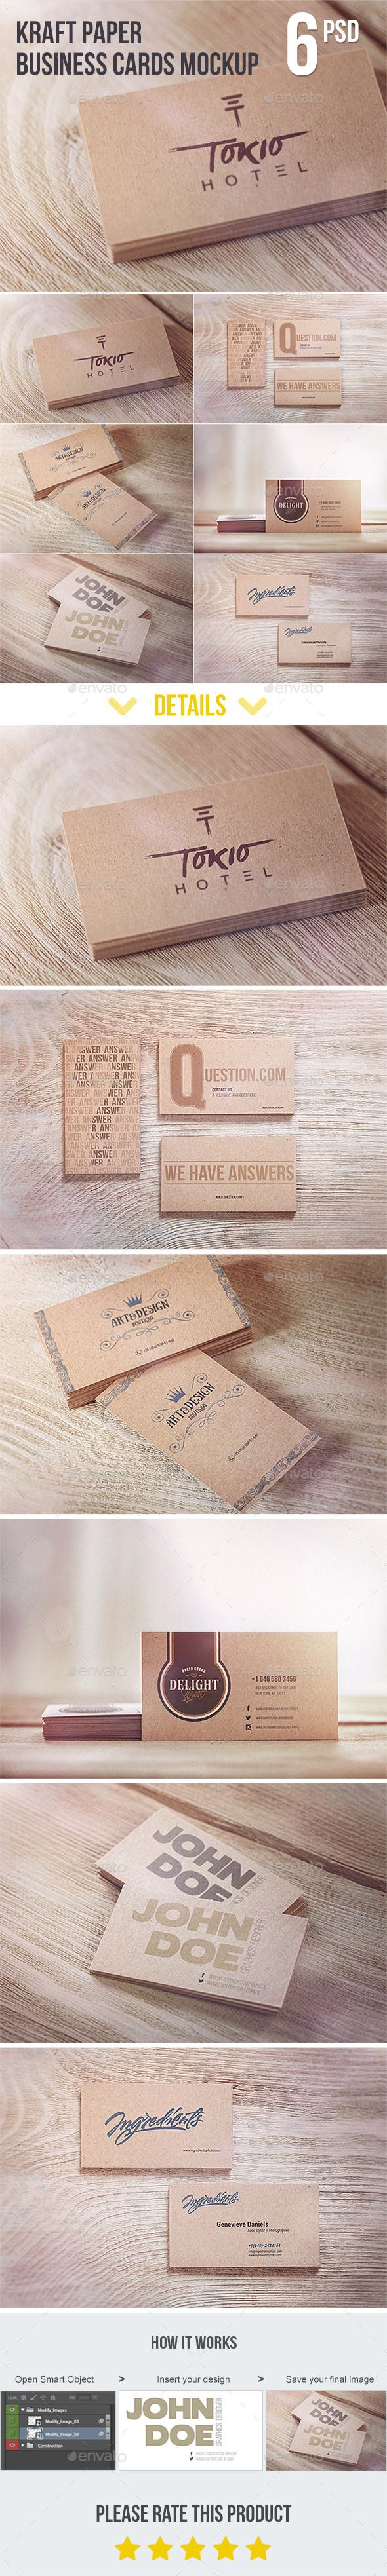 38 best Business Card images on Pinterest